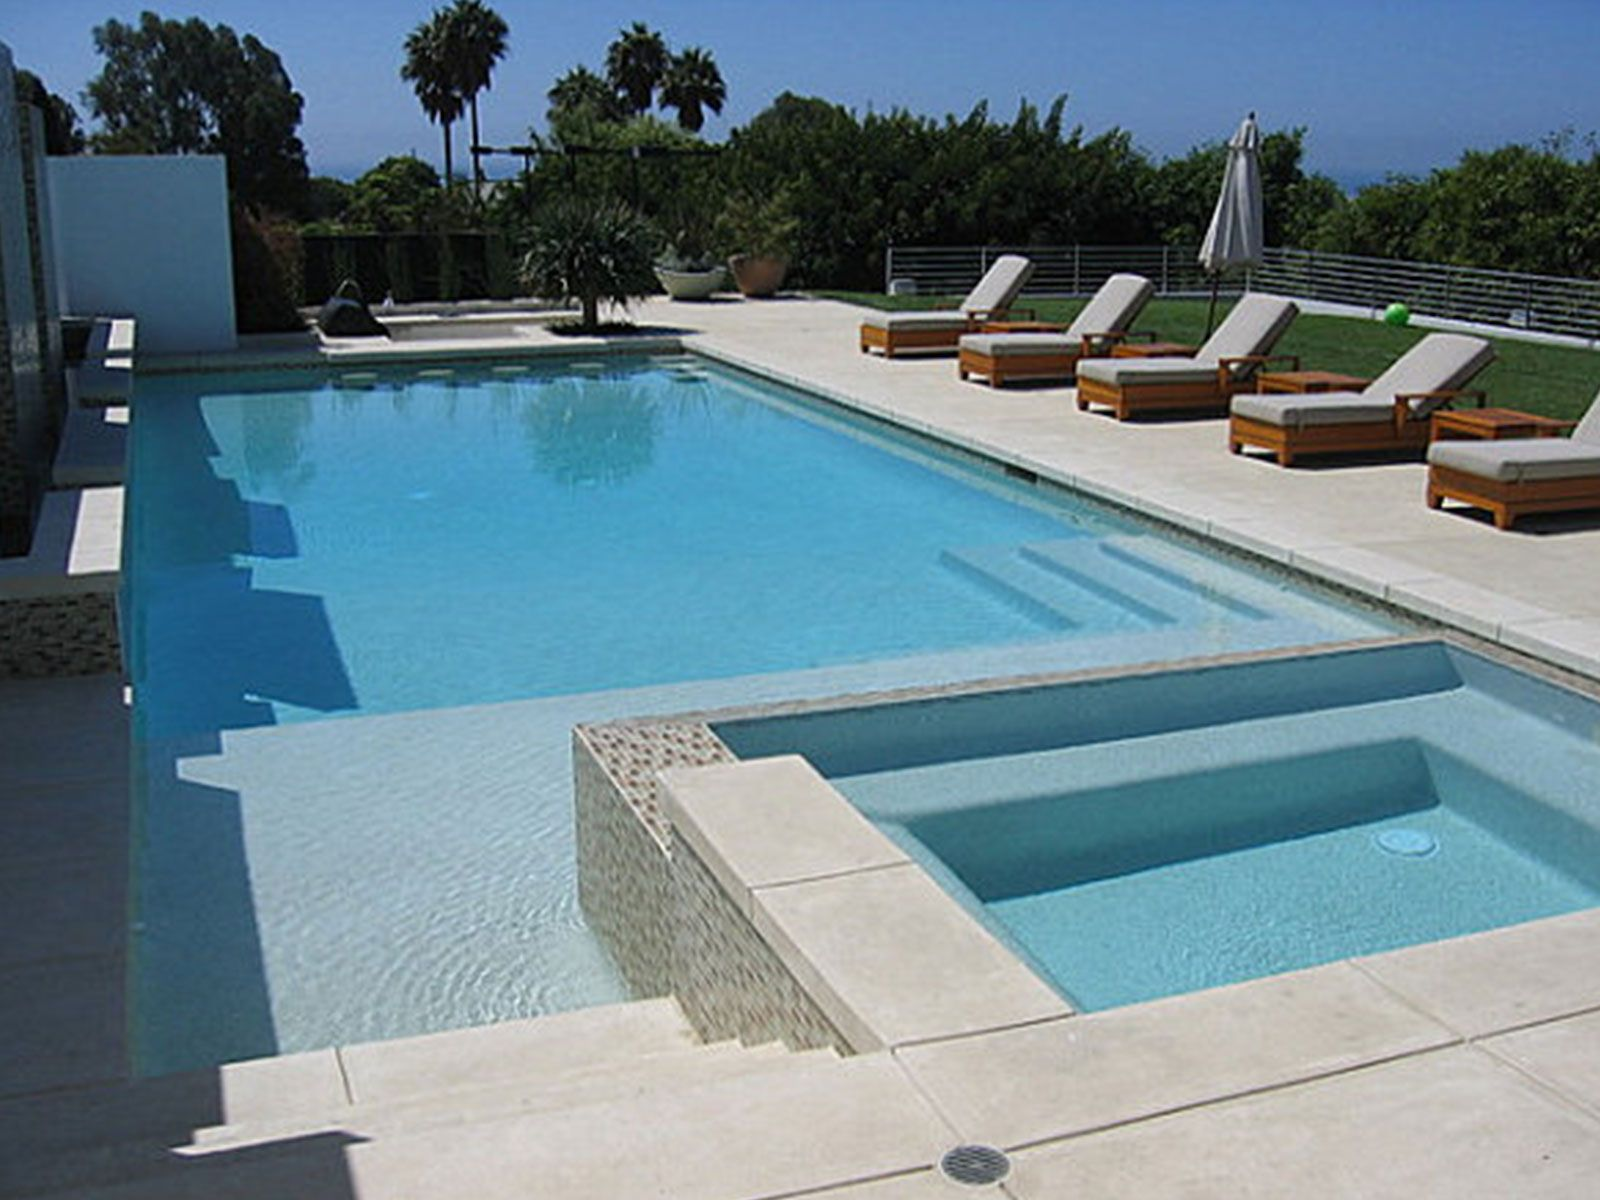 Simple swimming pool design image modern creative swimming for Simple inground pool designs